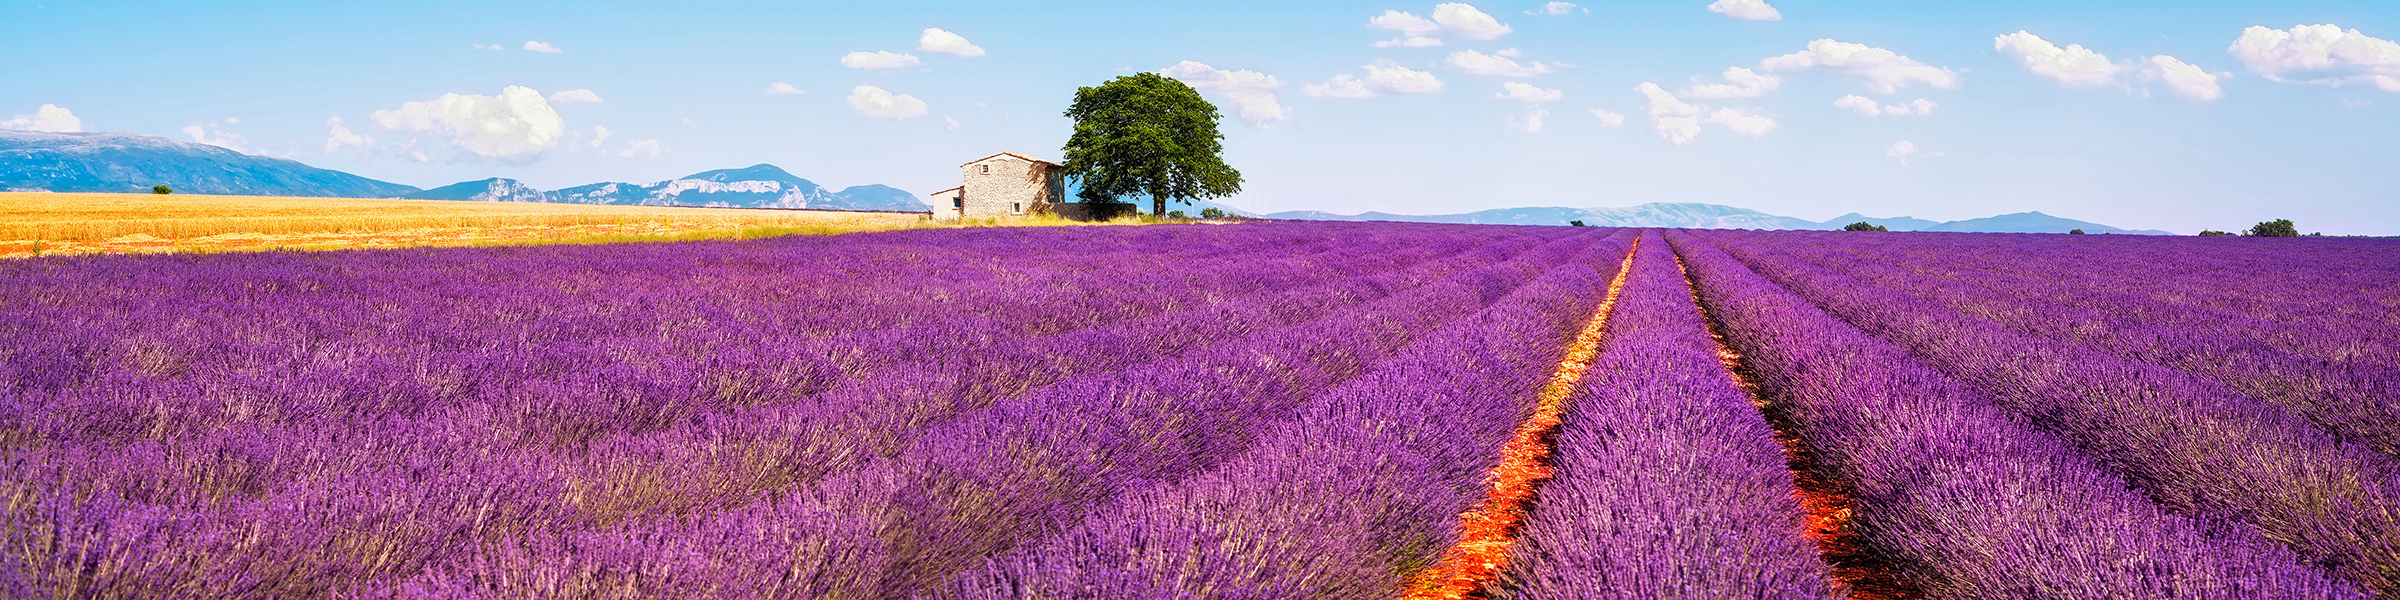 France Provence Lavender Field